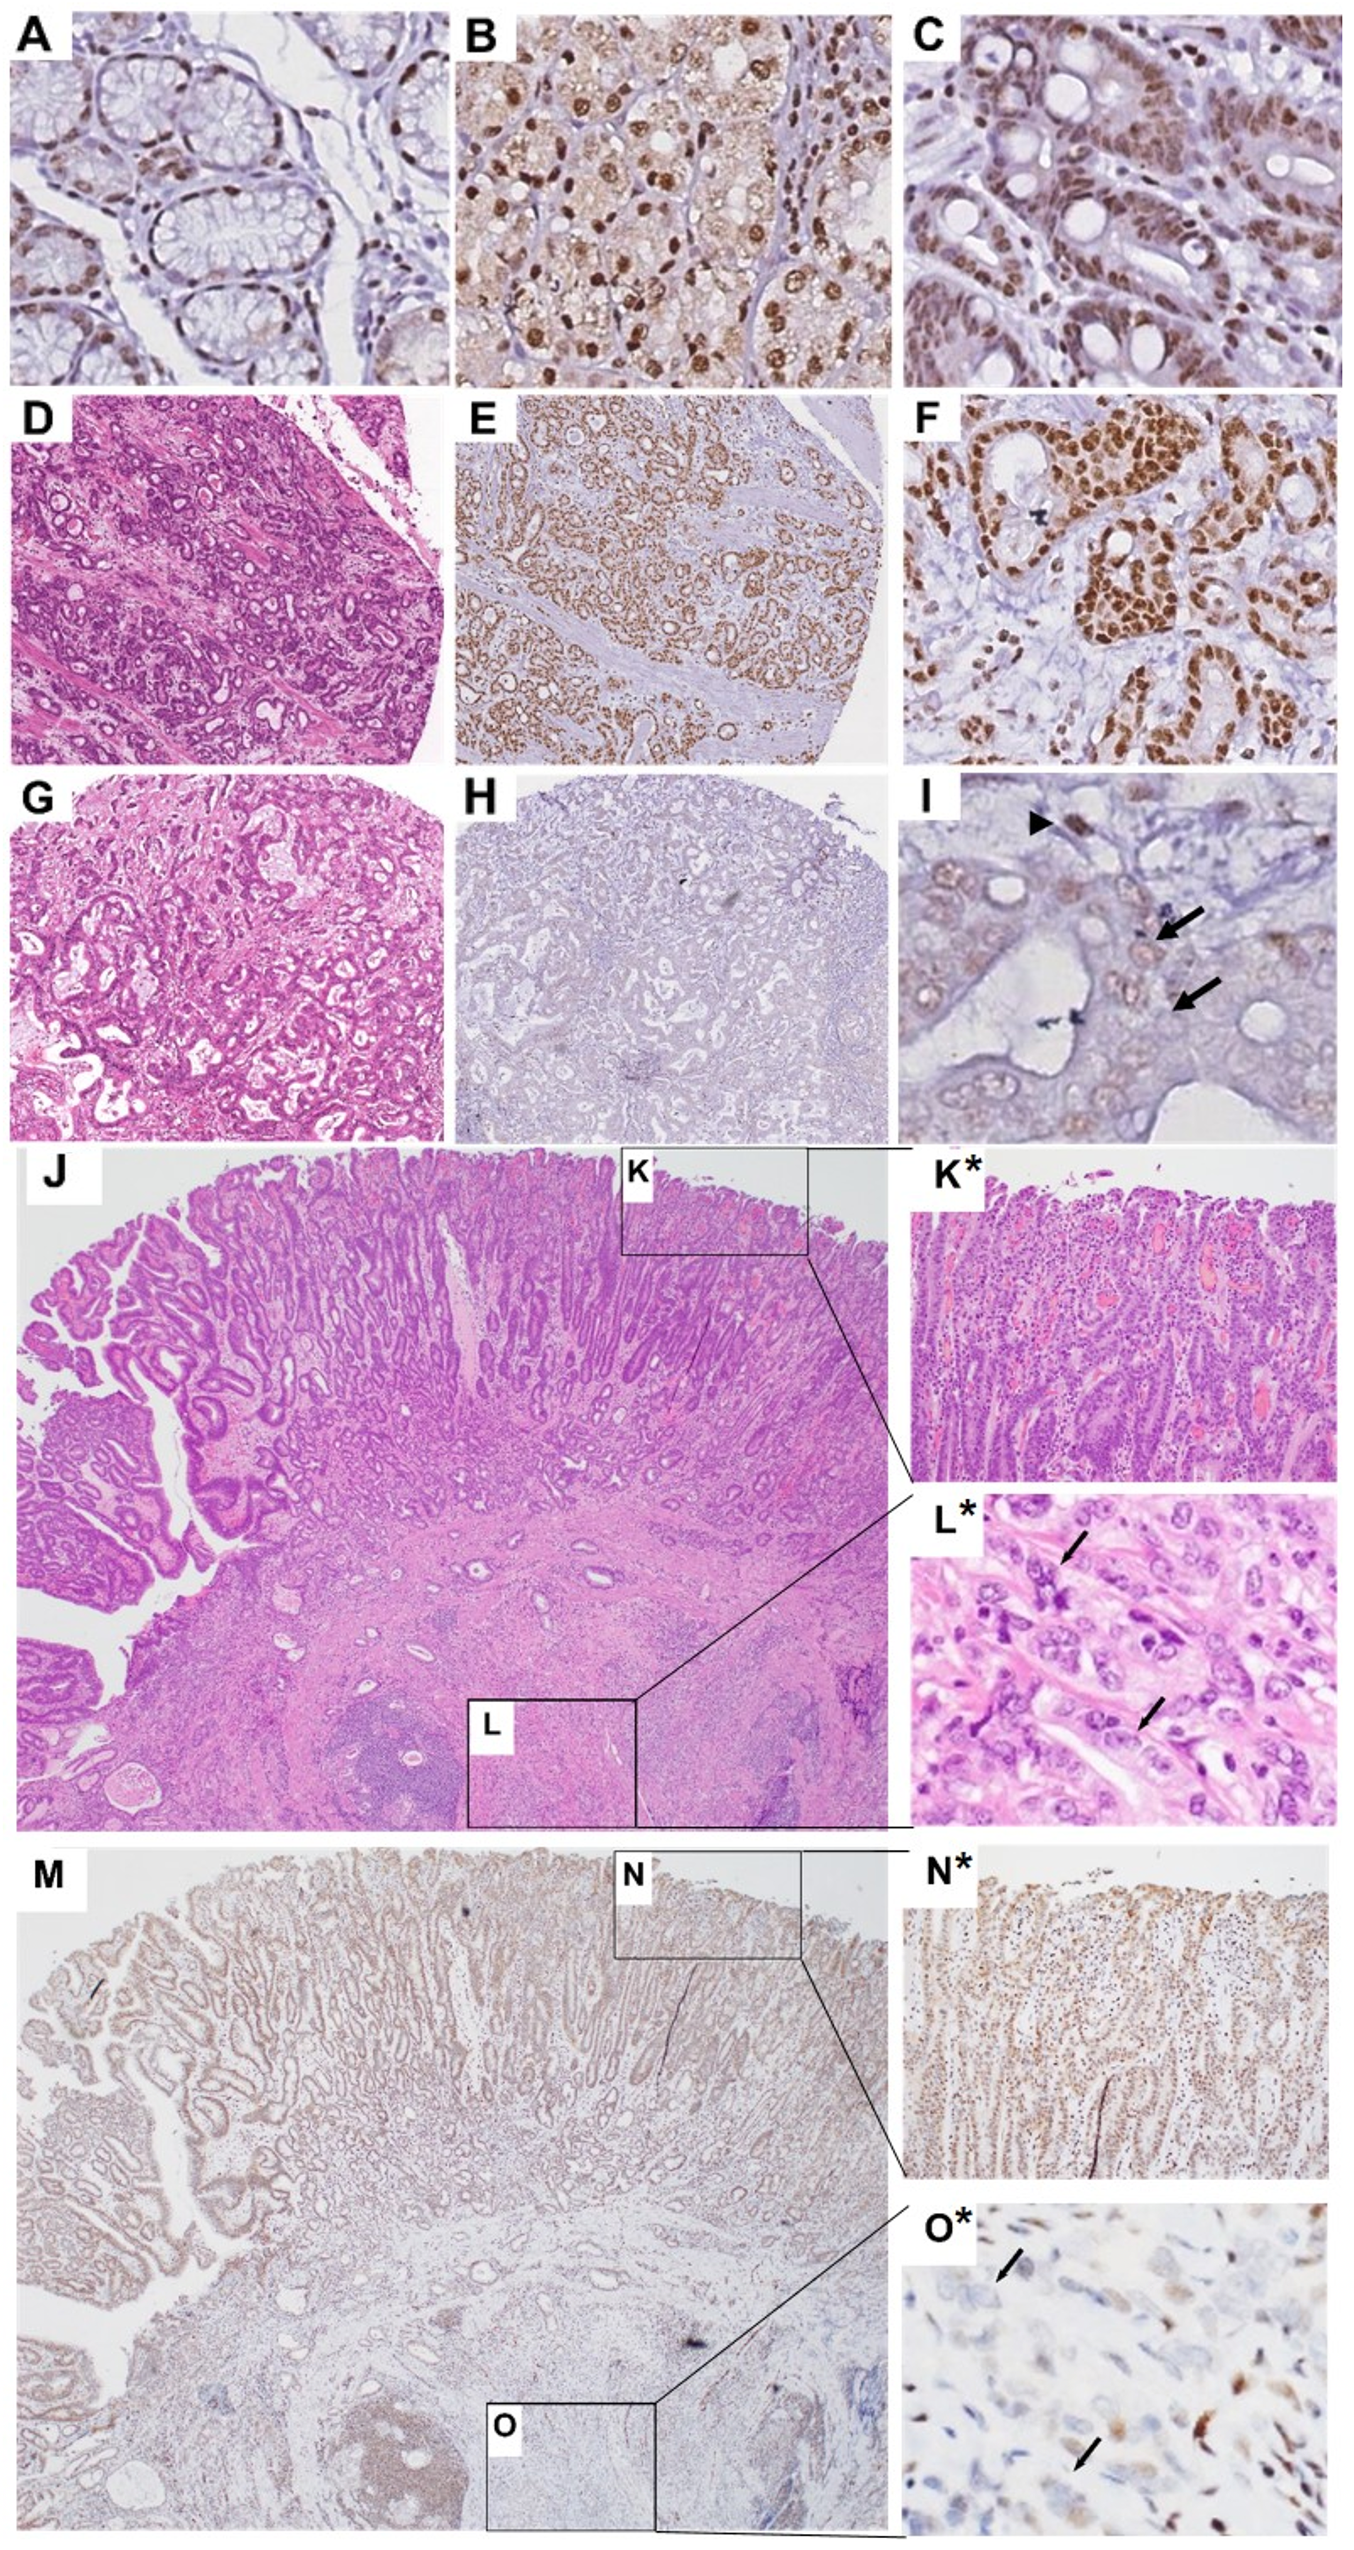 Representative nuclear FLI1 IHC staining in normal, IM and gastric adenocarcinoma tissues